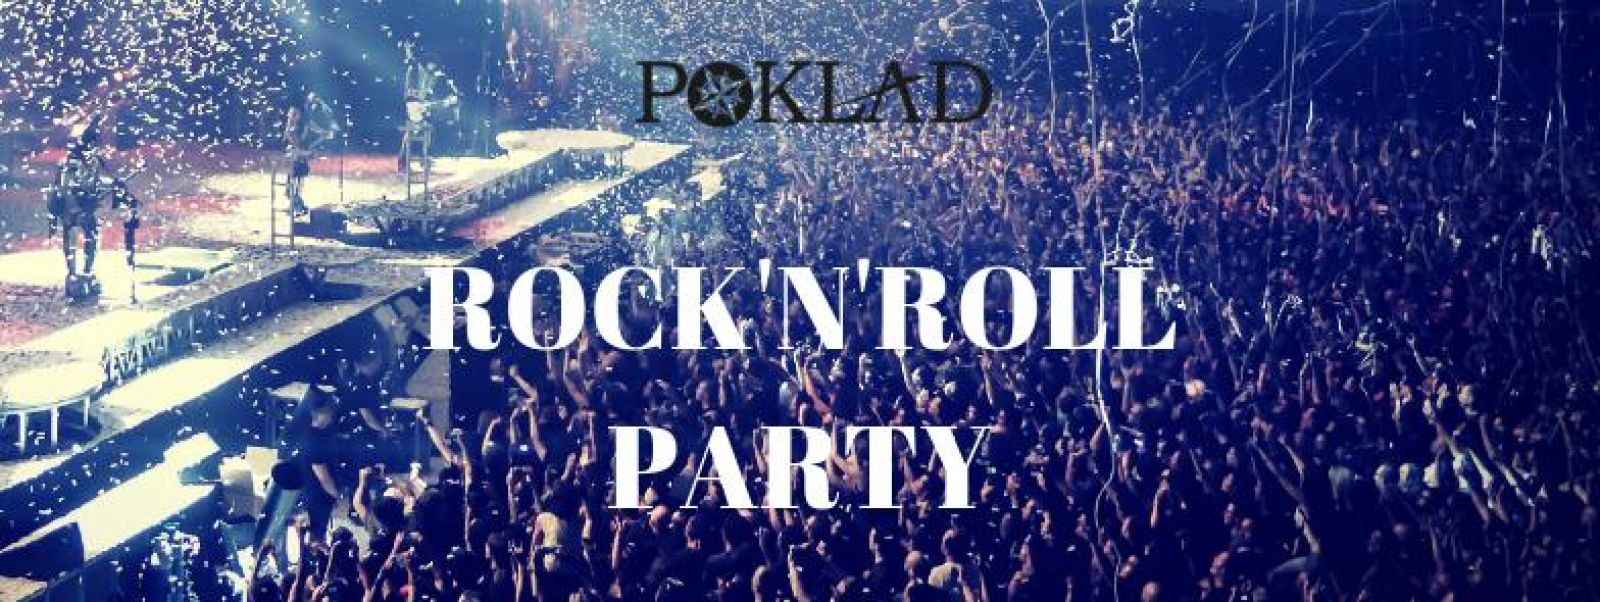 Rock'n'roll Party!